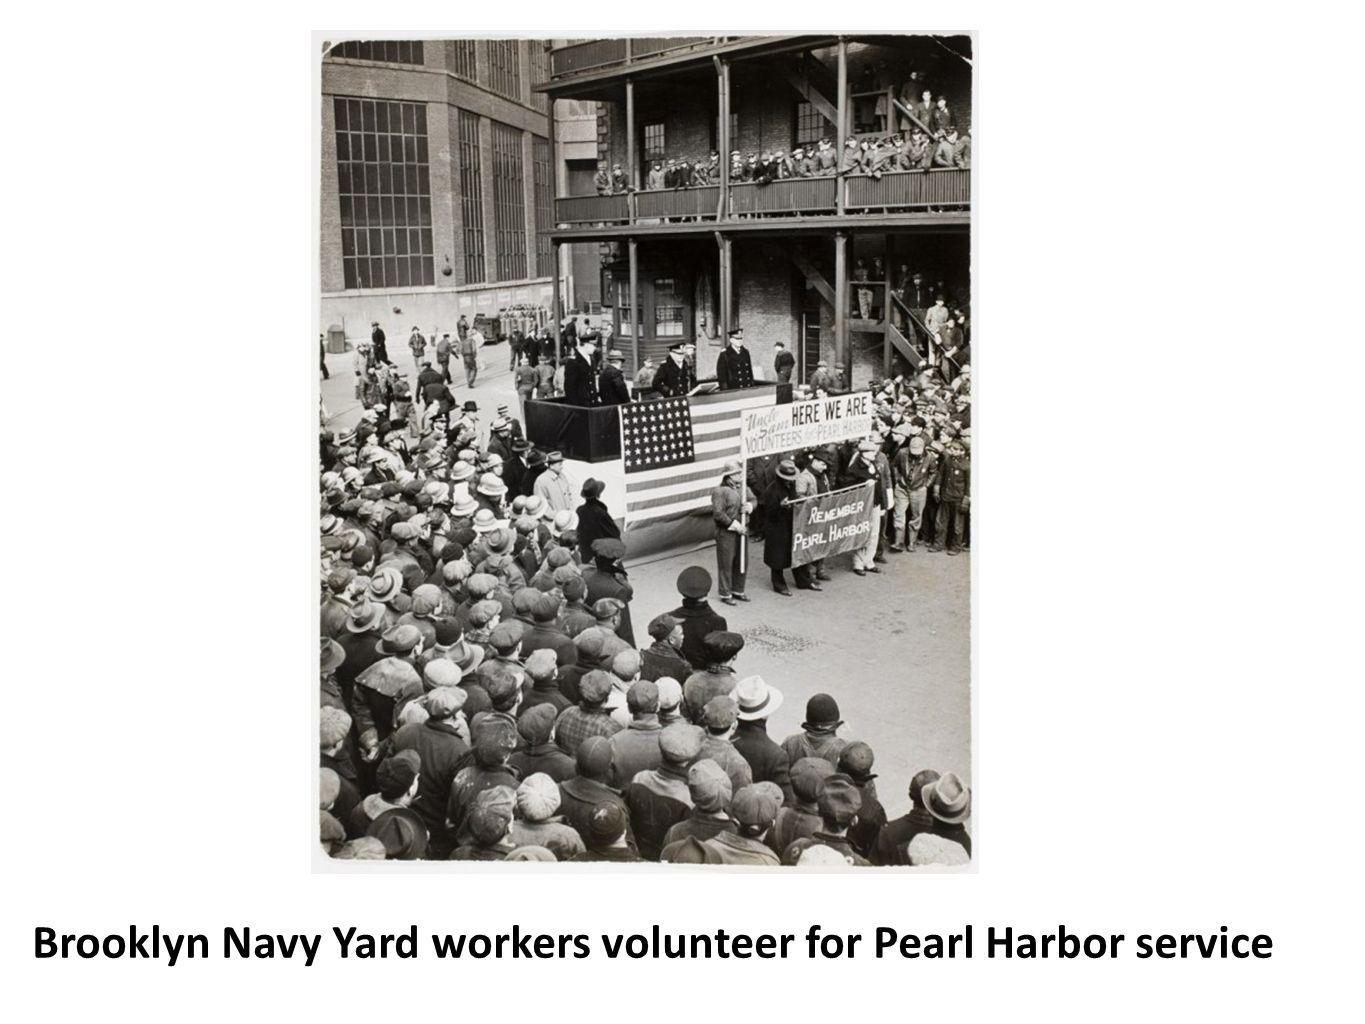 Brooklyn Navy Yard workers volunteer for Pearl Harbor service